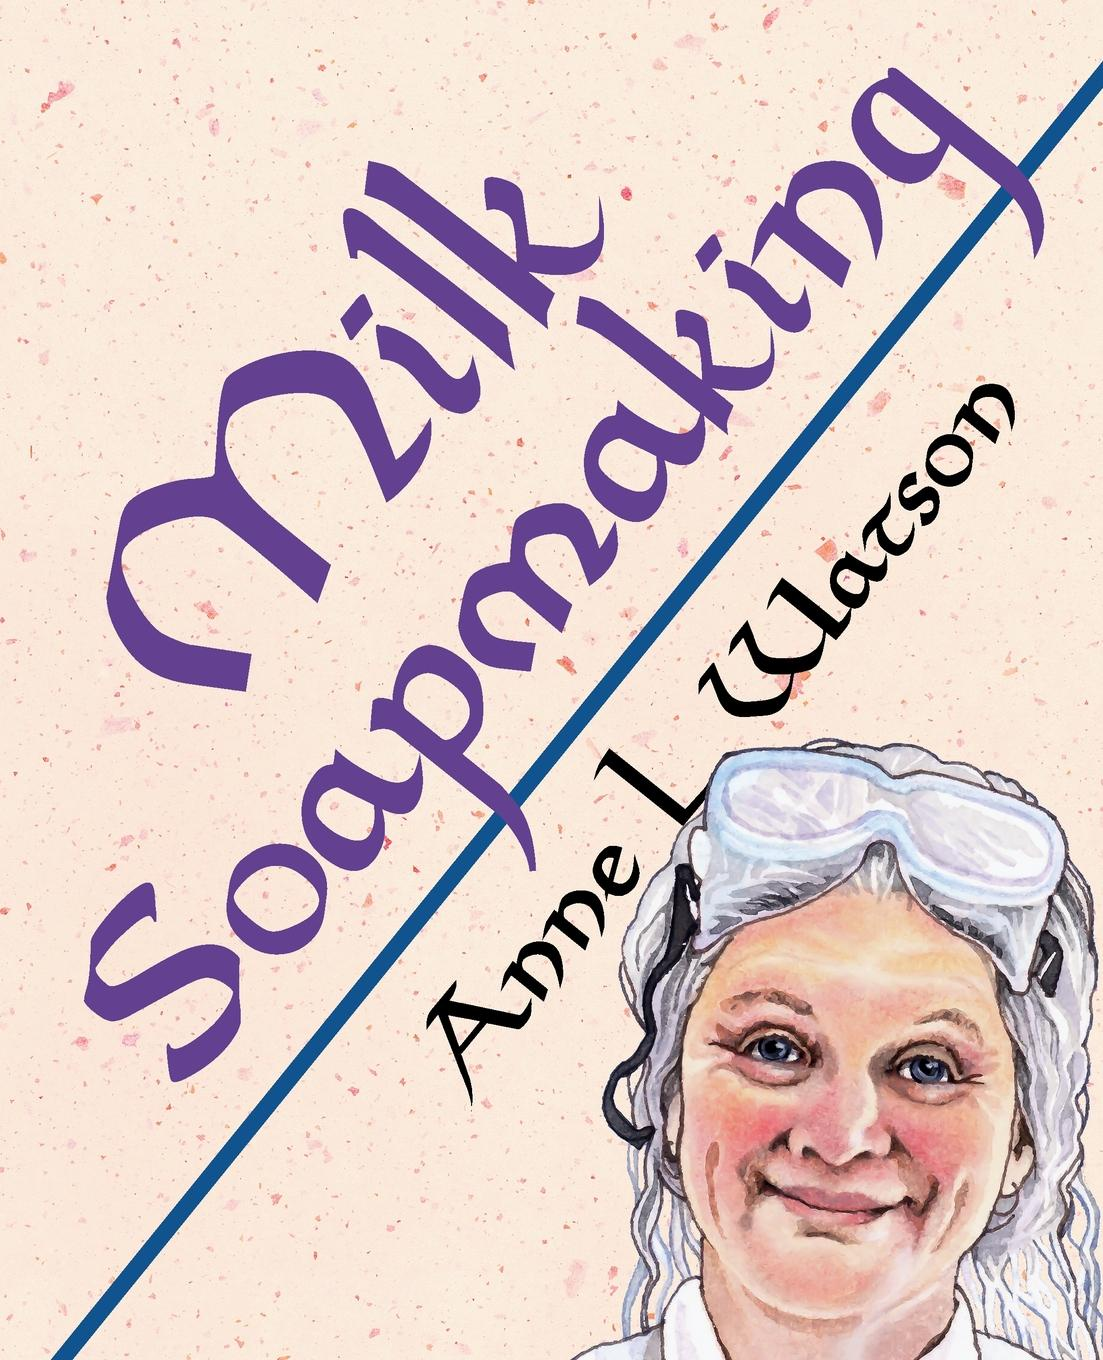 Anne L. Watson Milk Soapmaking. The Smart Guide to Making Milk Soap From Cow Milk, Goat Milk, Buttermilk, Cream, Coconut Milk, or Any Other Animal or Plant Milk fortunately the milk